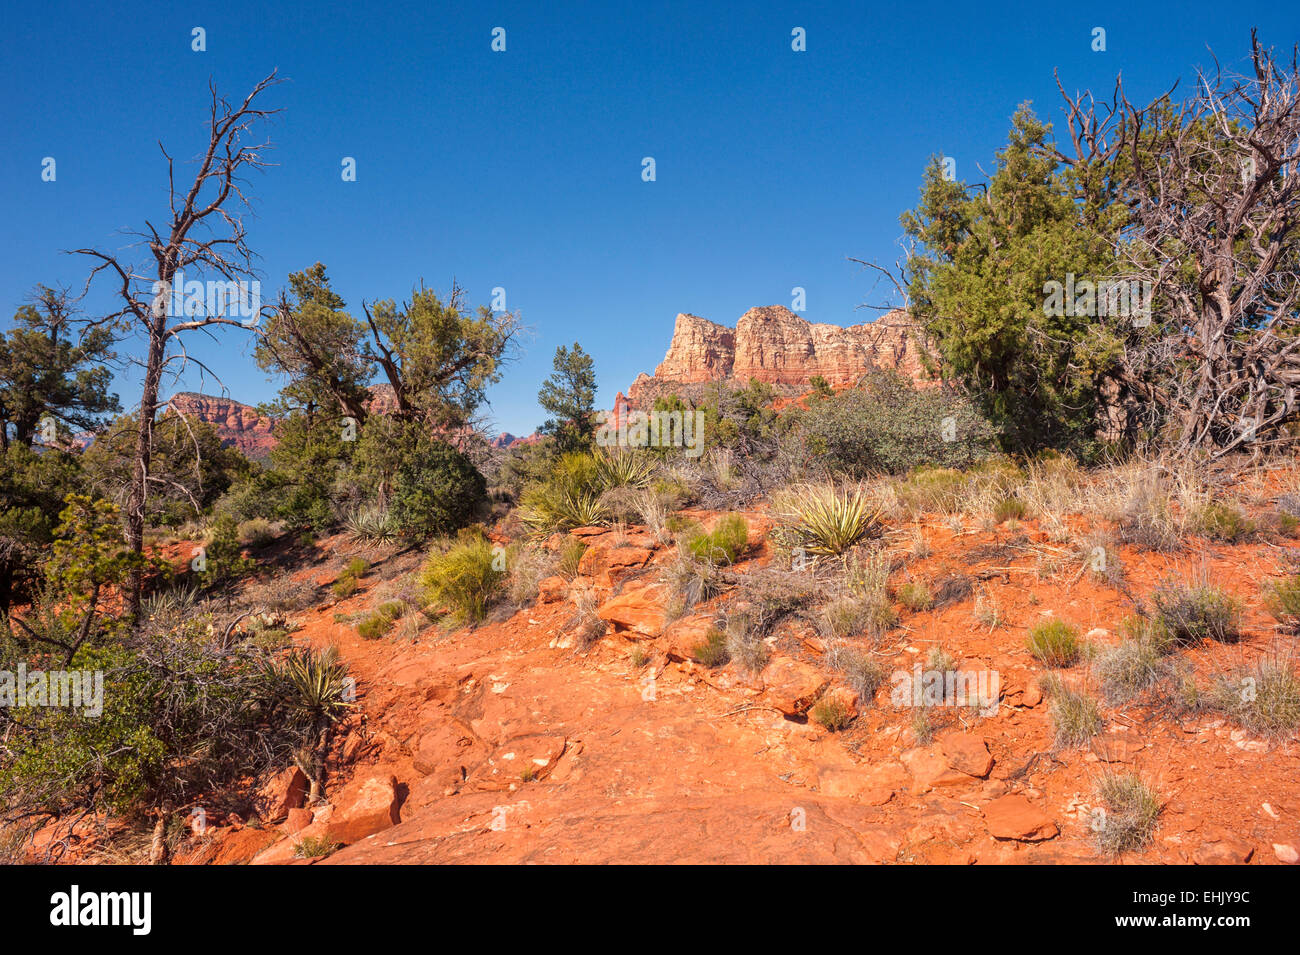 Sweeping view of Courthouse Butte and other red rock buttes, and southwestern desert landscape, Sedona, Arizona, - Stock Image